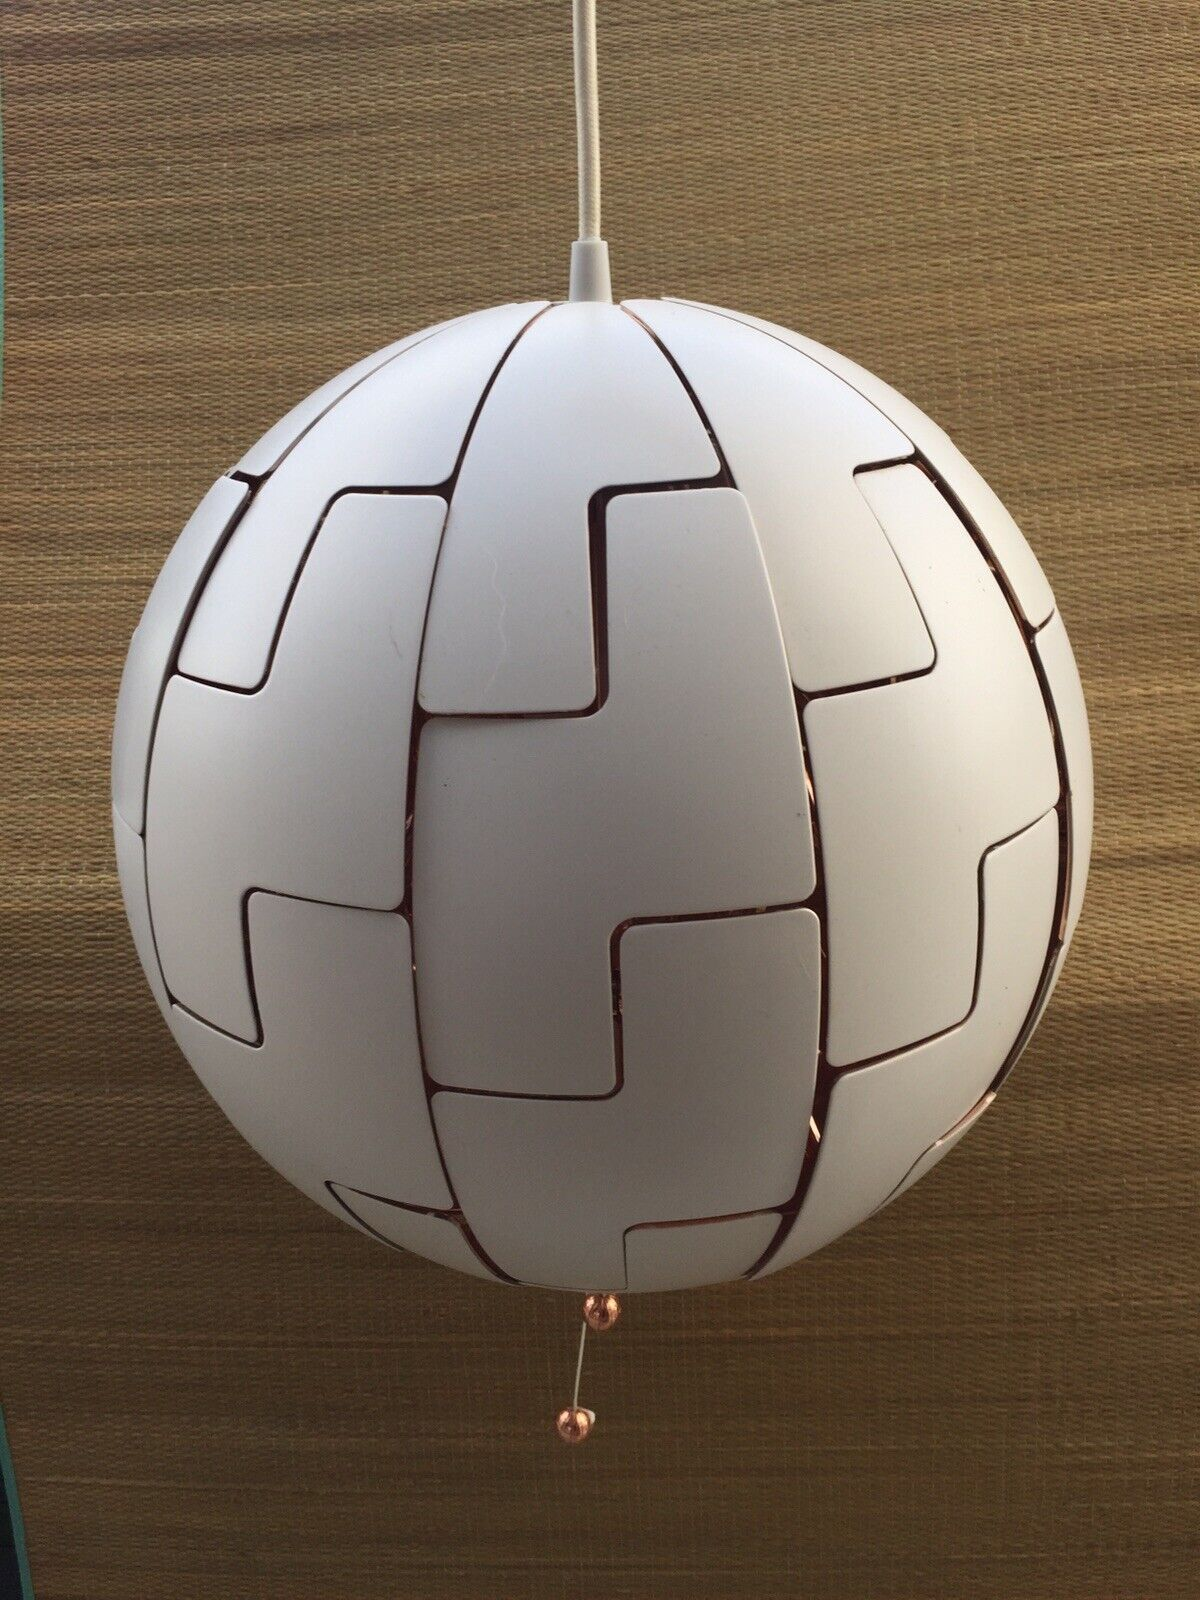 Ikea Ps 2014 Pendant Ceiling Light White Copper Death Star 35cms For Sale Online Ebay